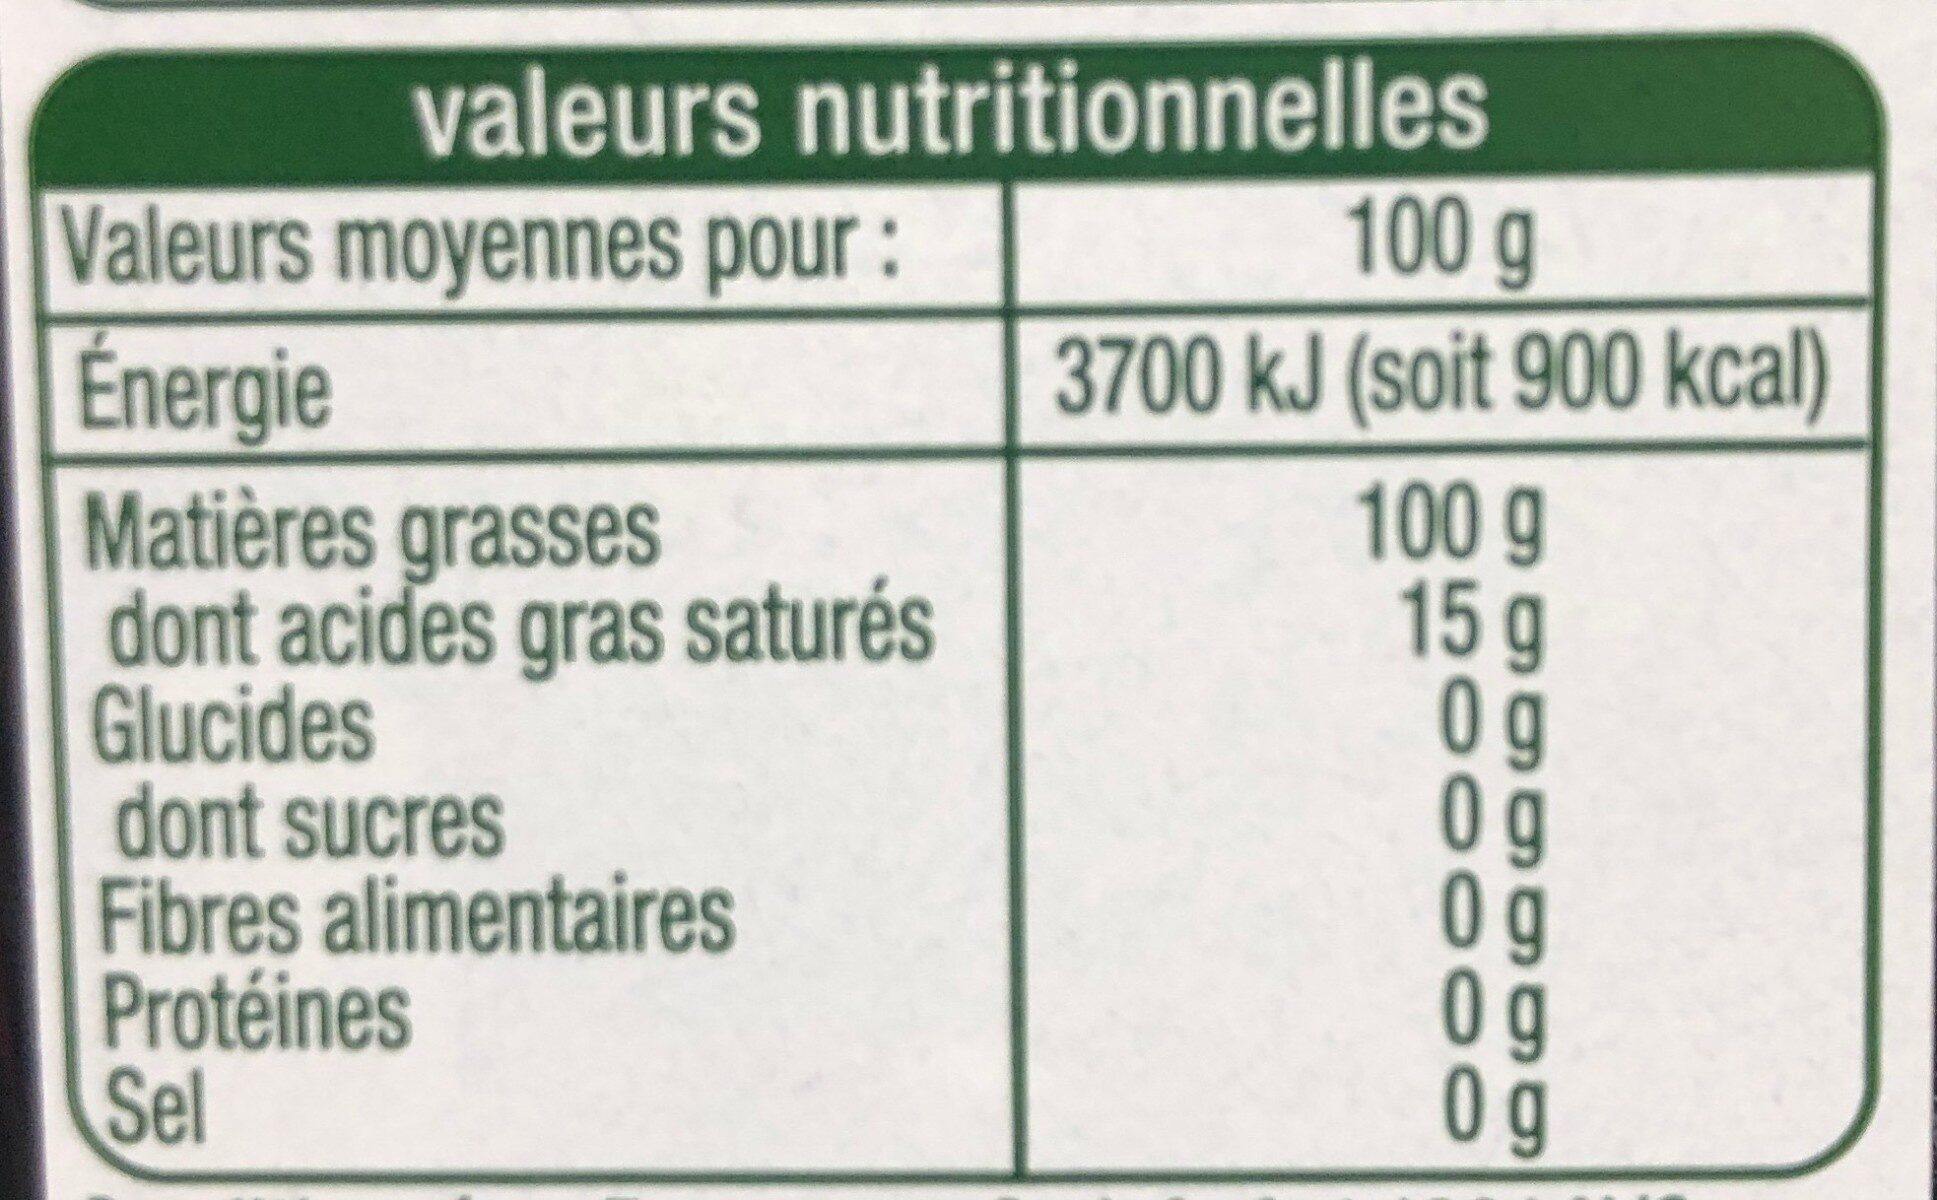 Huile d'olive vierge extra origine italie - Nutrition facts